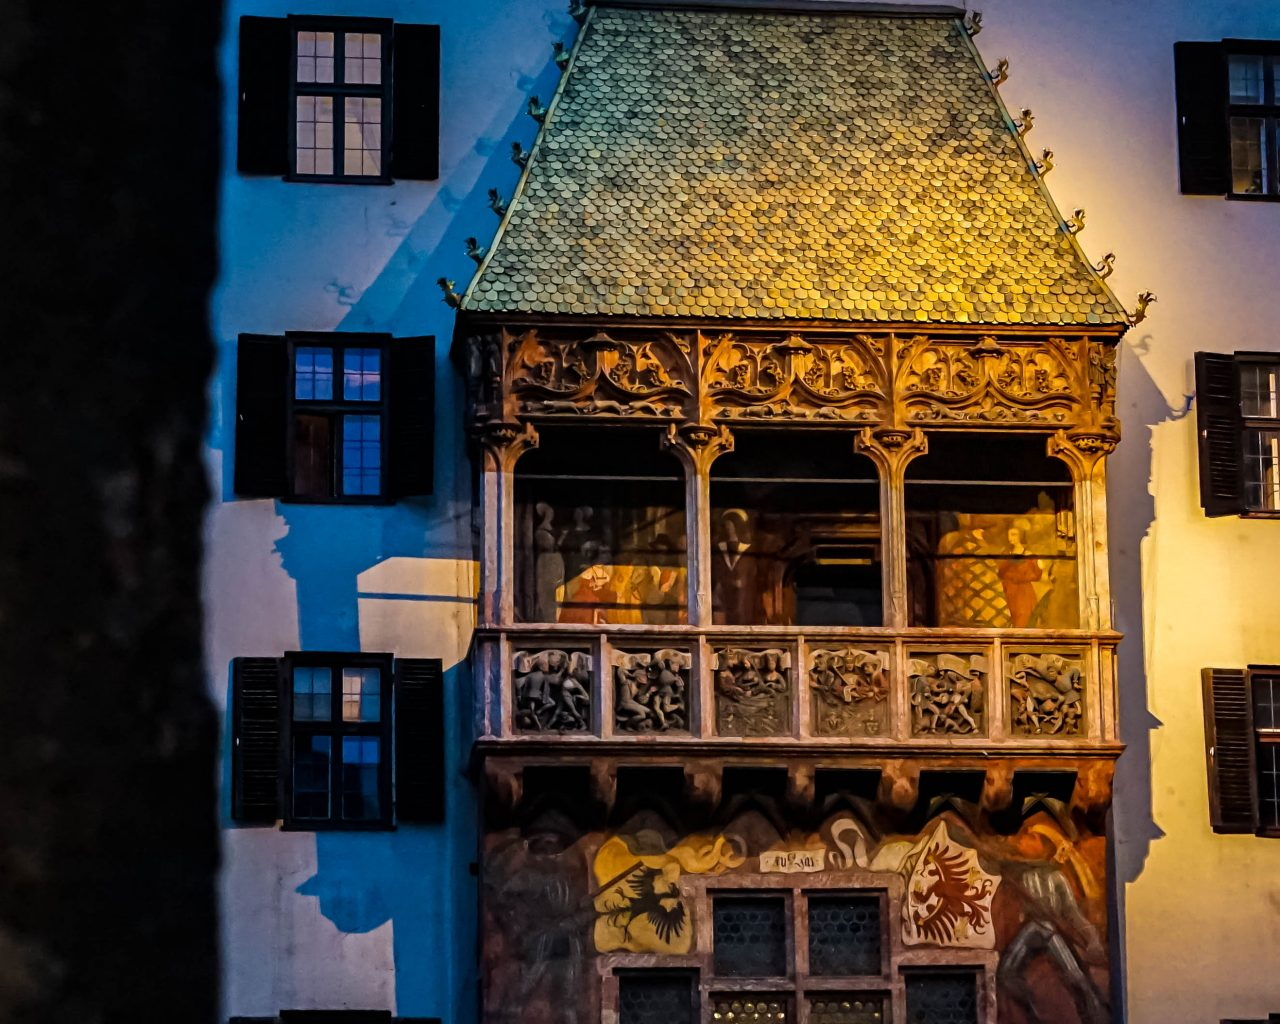 Golden-roof-Innsbruck-nacht